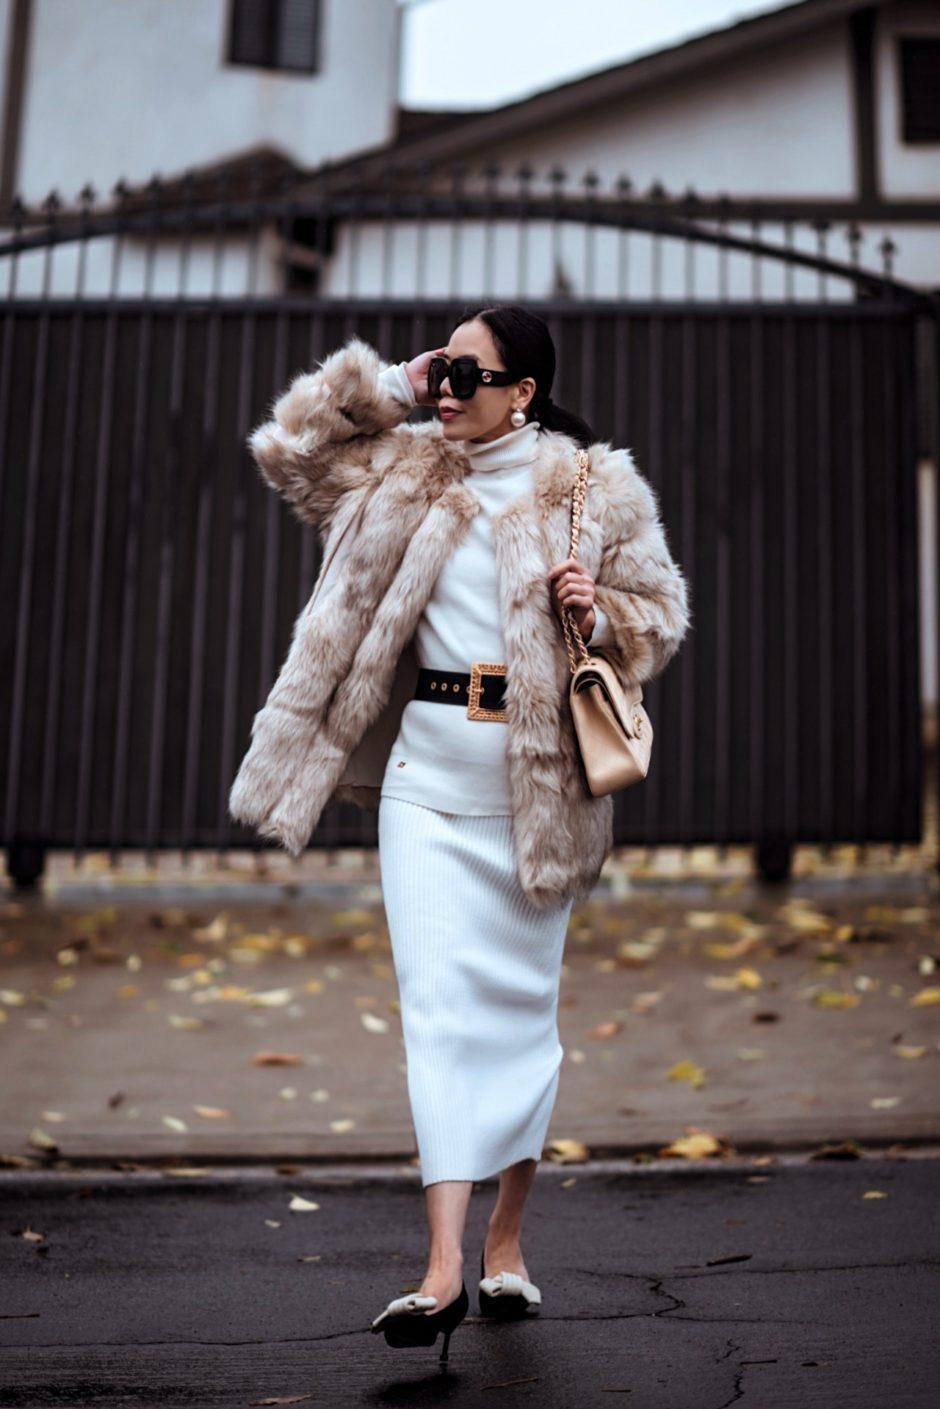 hallie daily blogger coat sweater skirt belt bag shoes sunglasses jewels winter outfits faux fur jacket chanel bag knitted skirt dress knitted dress turtleneck dress belted dress midi dress pumps faux fur coat black belt midi skirt white skirt turtleneck sweater white sweater knit shoulder bag